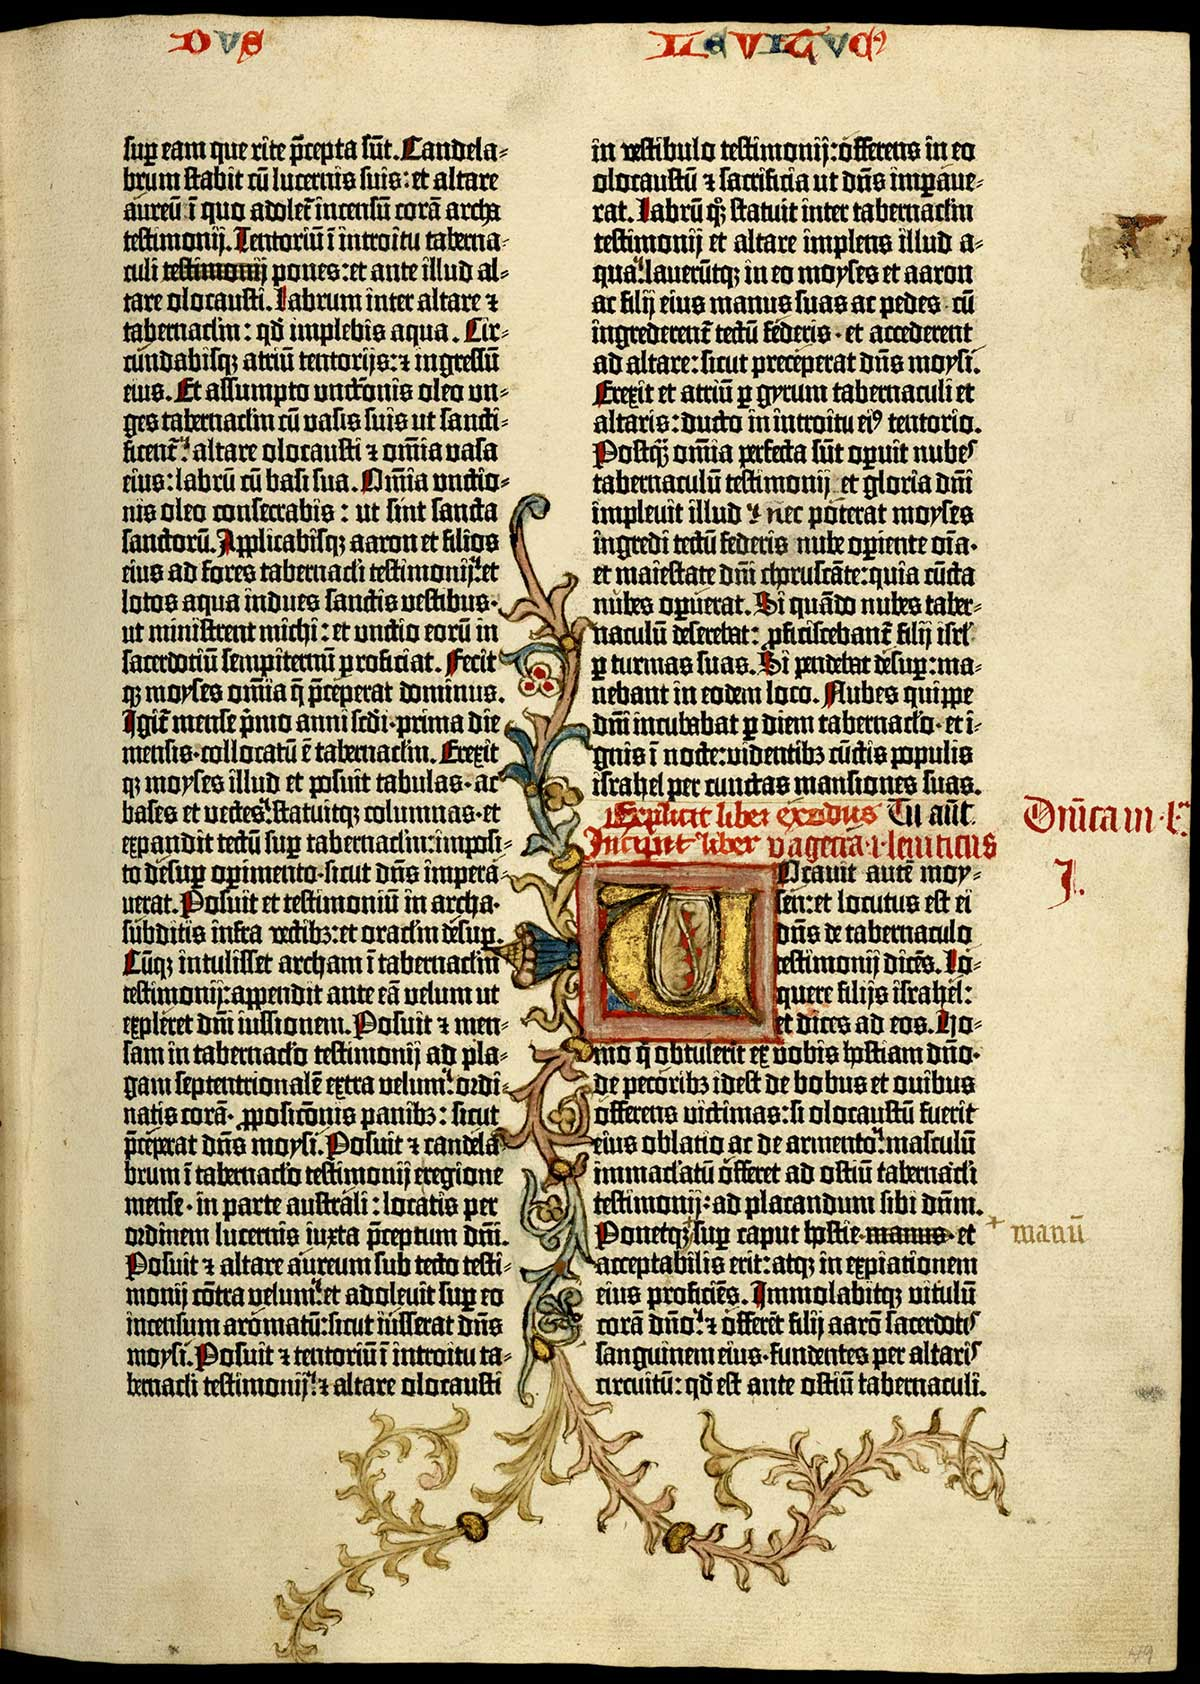 [Biblia latina, commonly known as the Gutenberg Bible (Mainz: Johann Gutenberg and Johann Fust, between 1454 and 1456)], 49 recto. With its red text and elaborately decorated initial, this page showing the beginning of Leviticus is unquestionably indebted to the design conventions of earlier manuscripts.